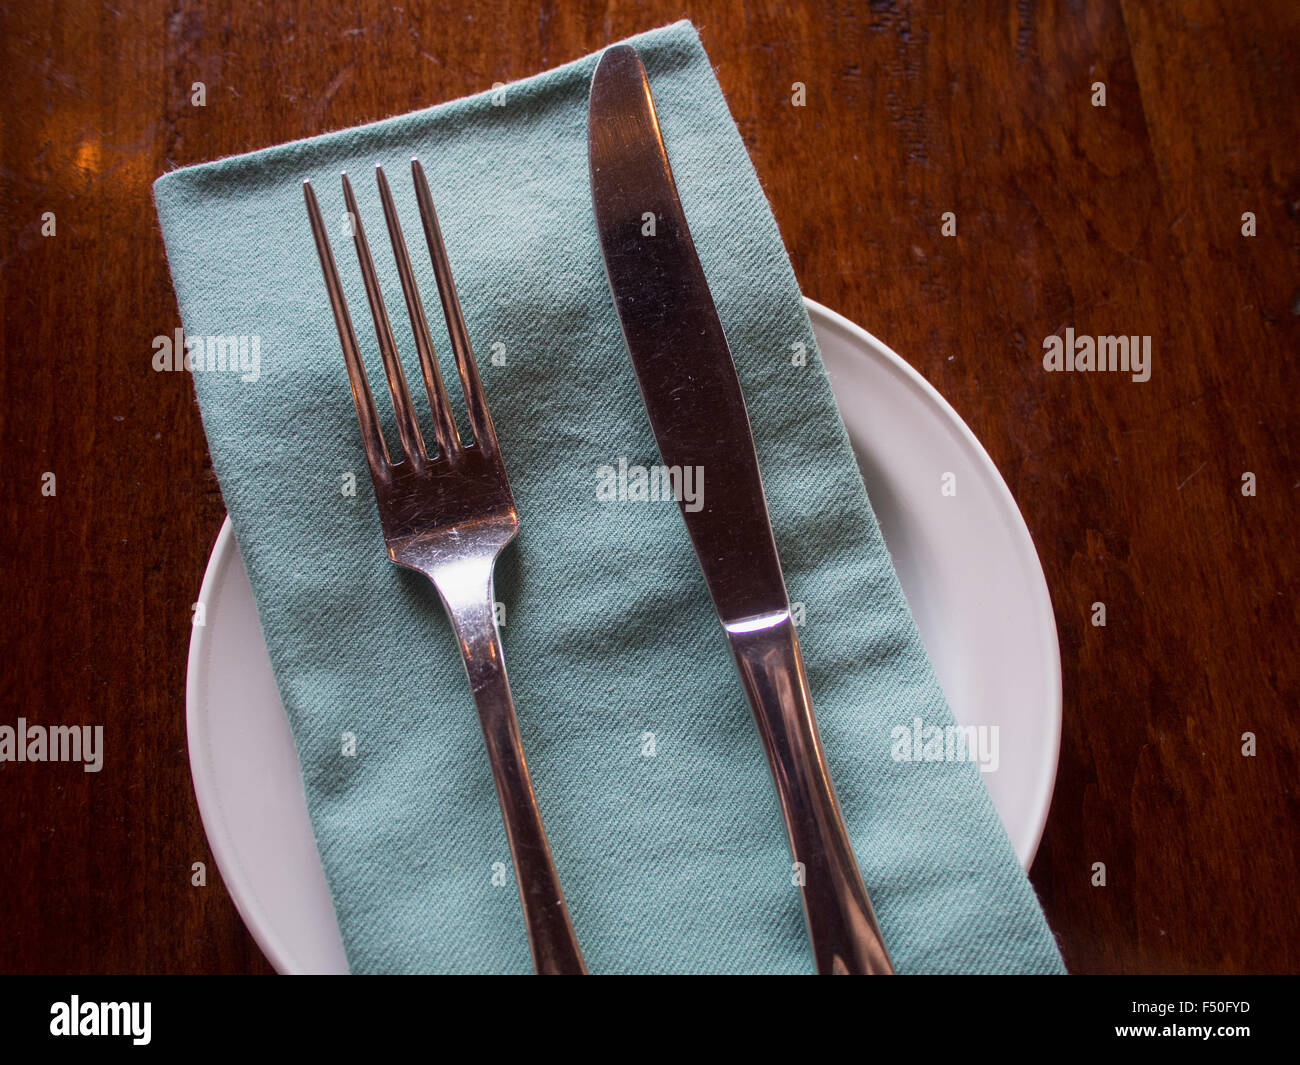 Silverware arranged on a napkin and plate - Stock Image